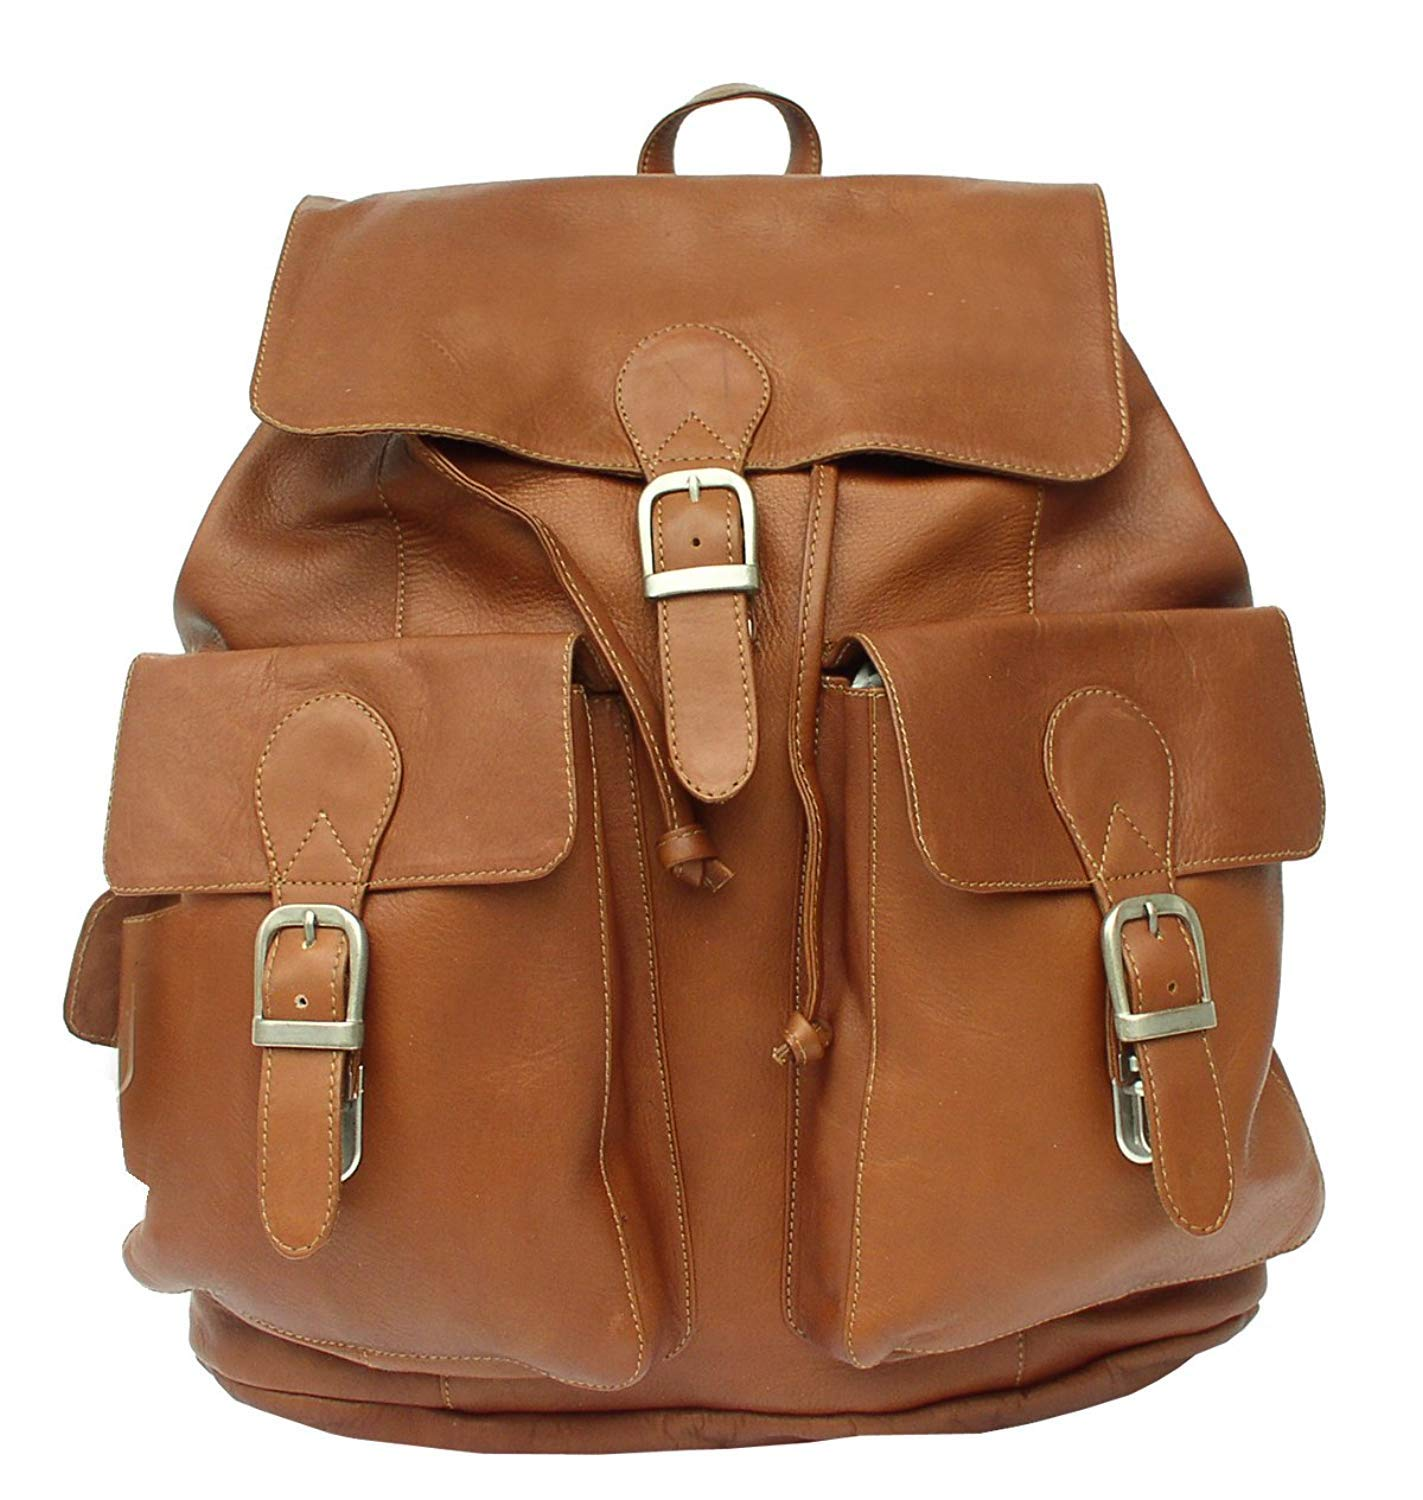 Saddle Piel Leather Large Buckle-Flap Backpack One Size